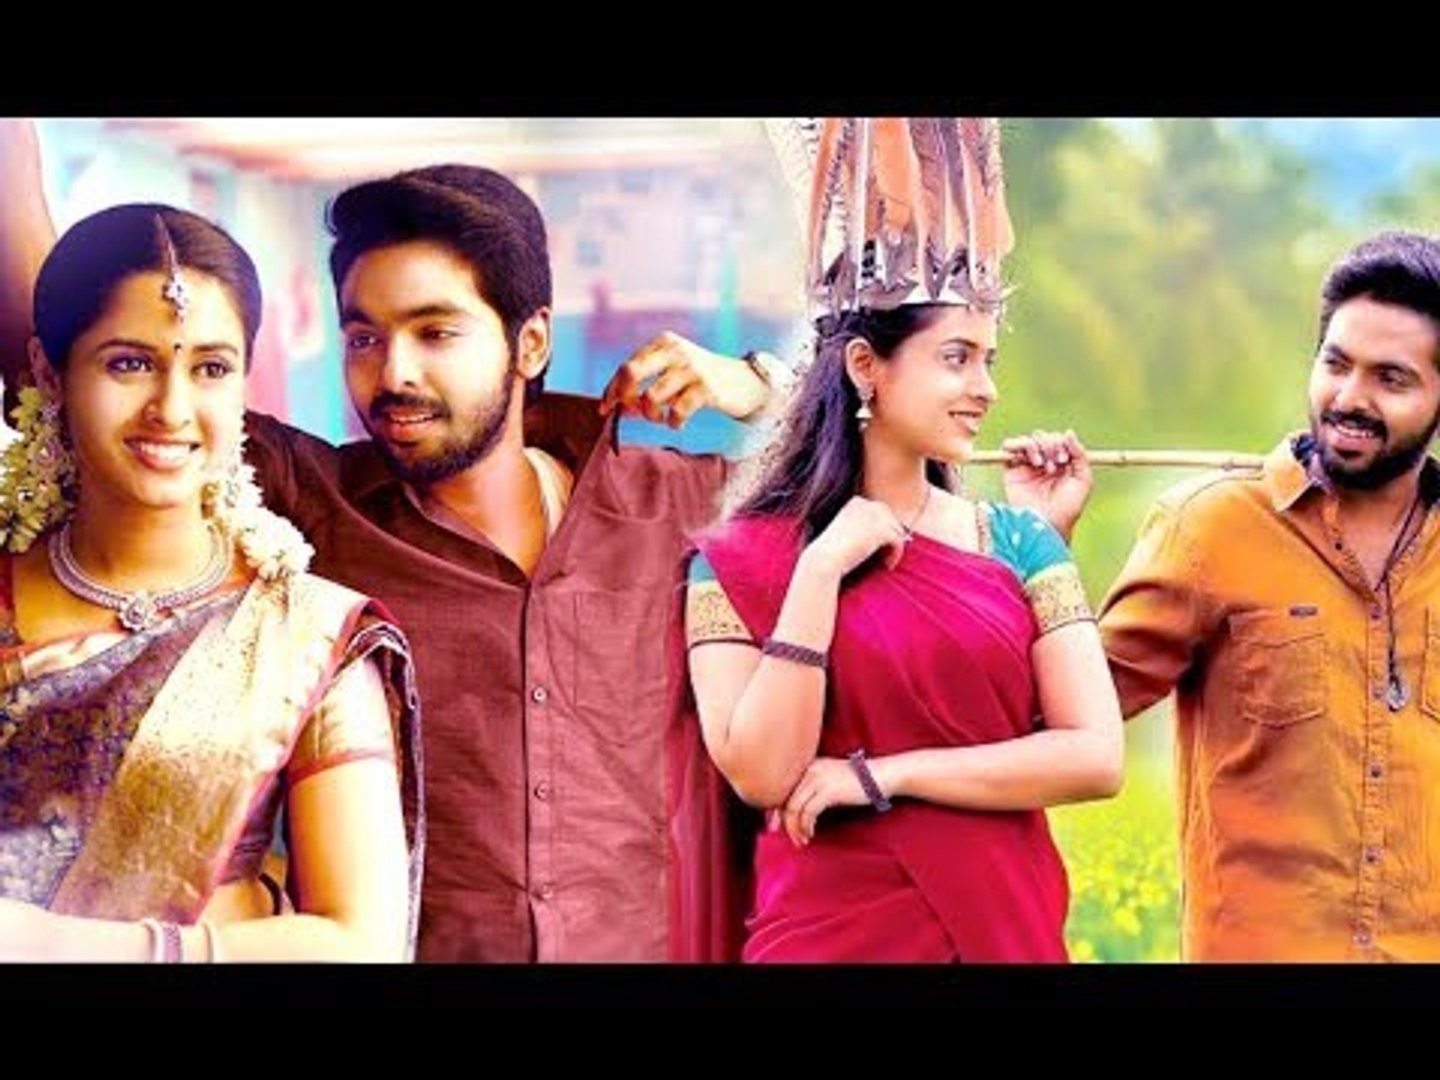 Tamil New Movies 2017 Full Movie # Tamil Movie Free Watch Online # Tamil  Movies Download